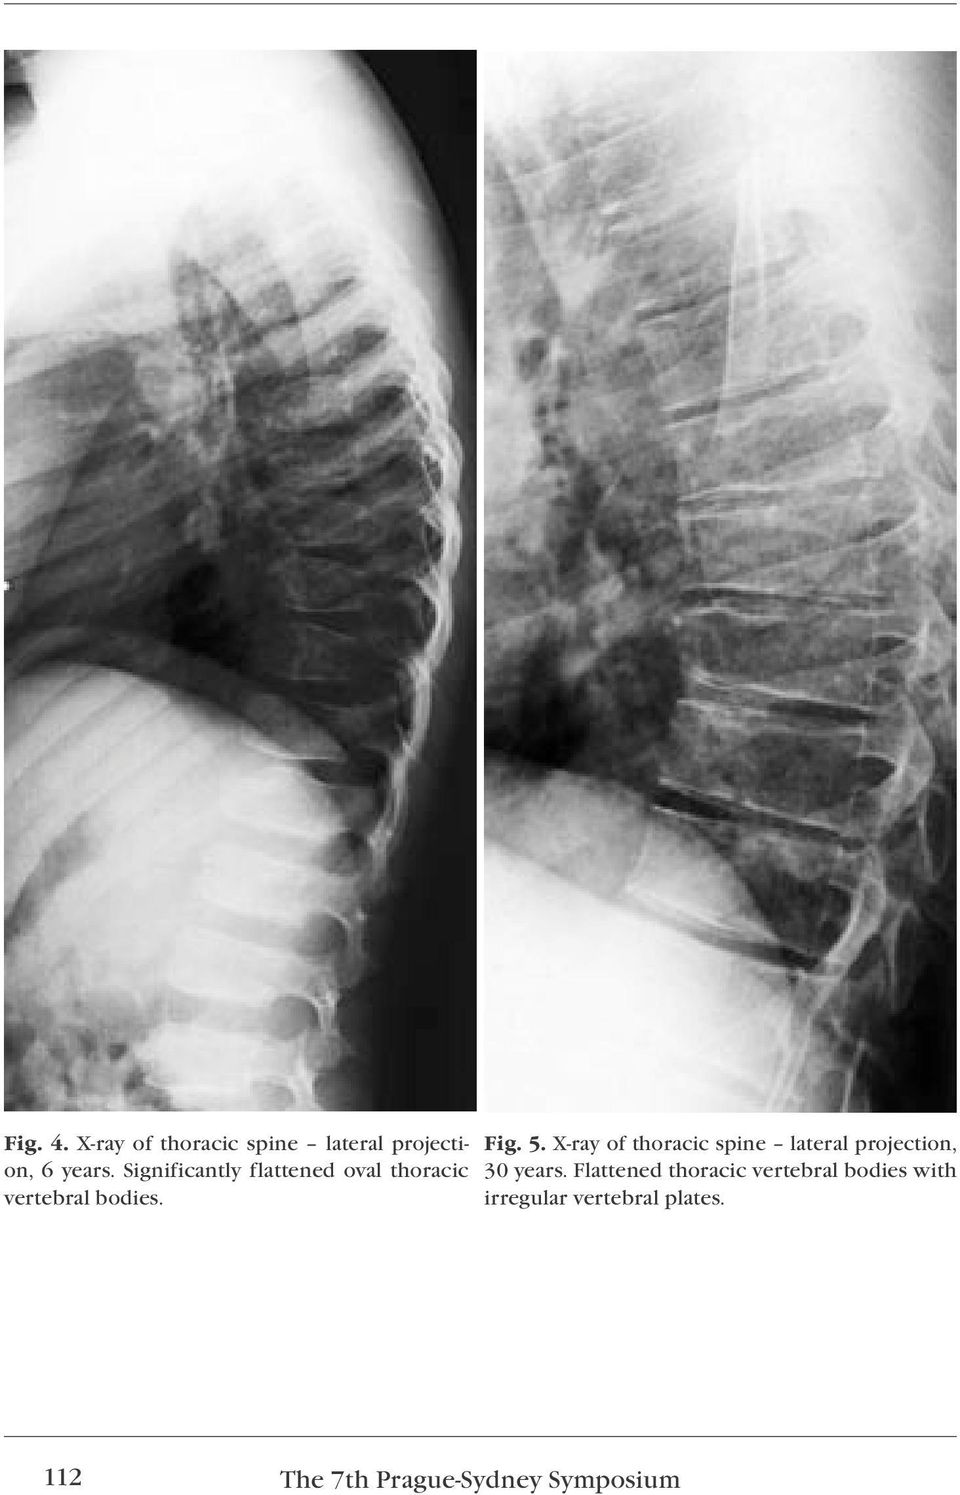 X-ray of thoracic spine lateral projection, 30 years.